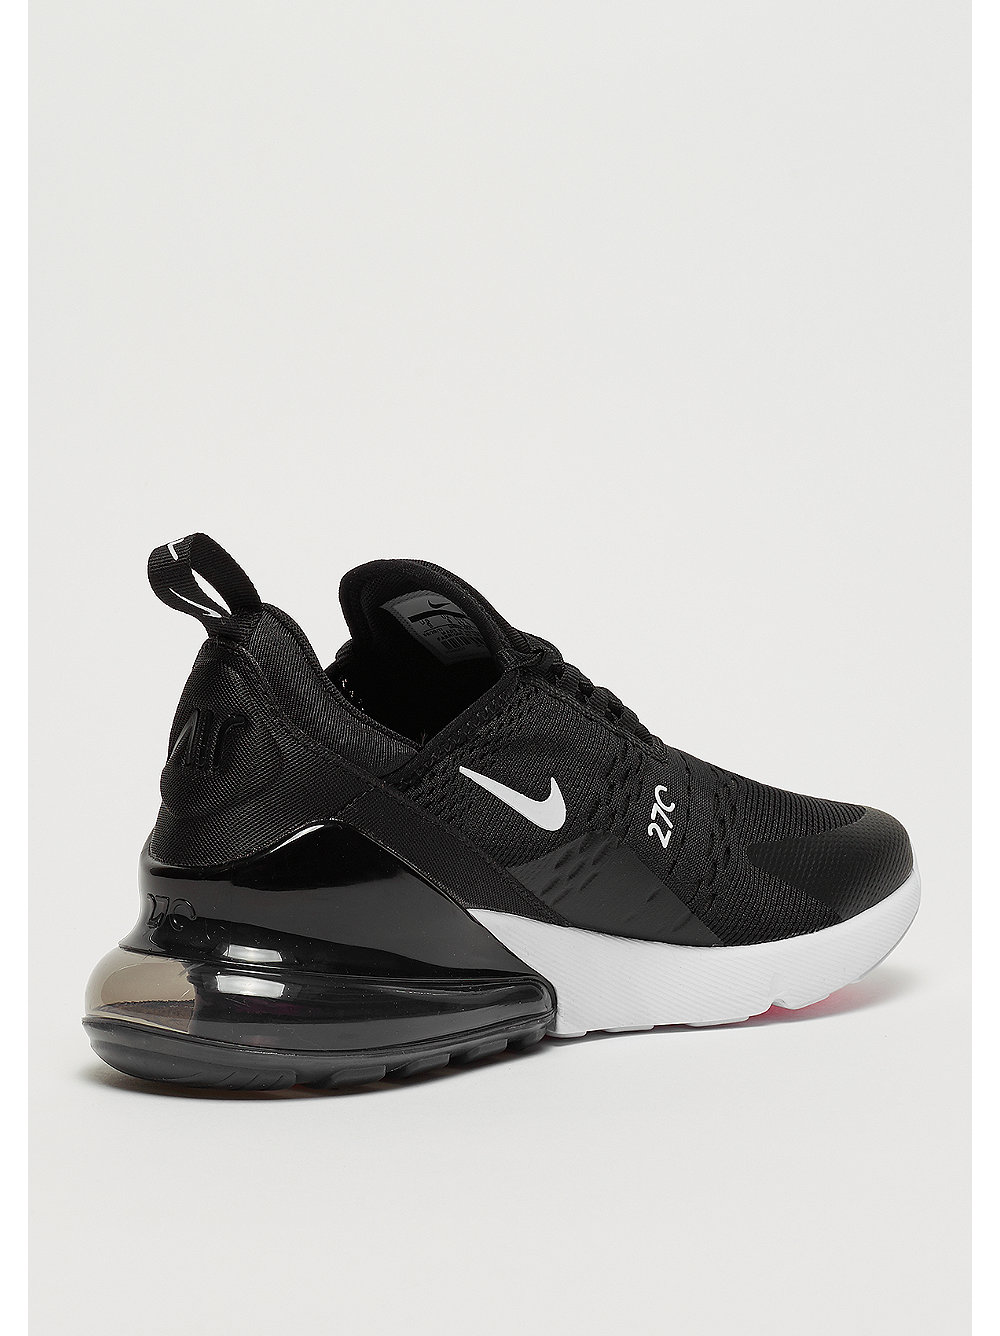 NIKE Air Max 270 black anthracite white solar red bij . 500a300f9